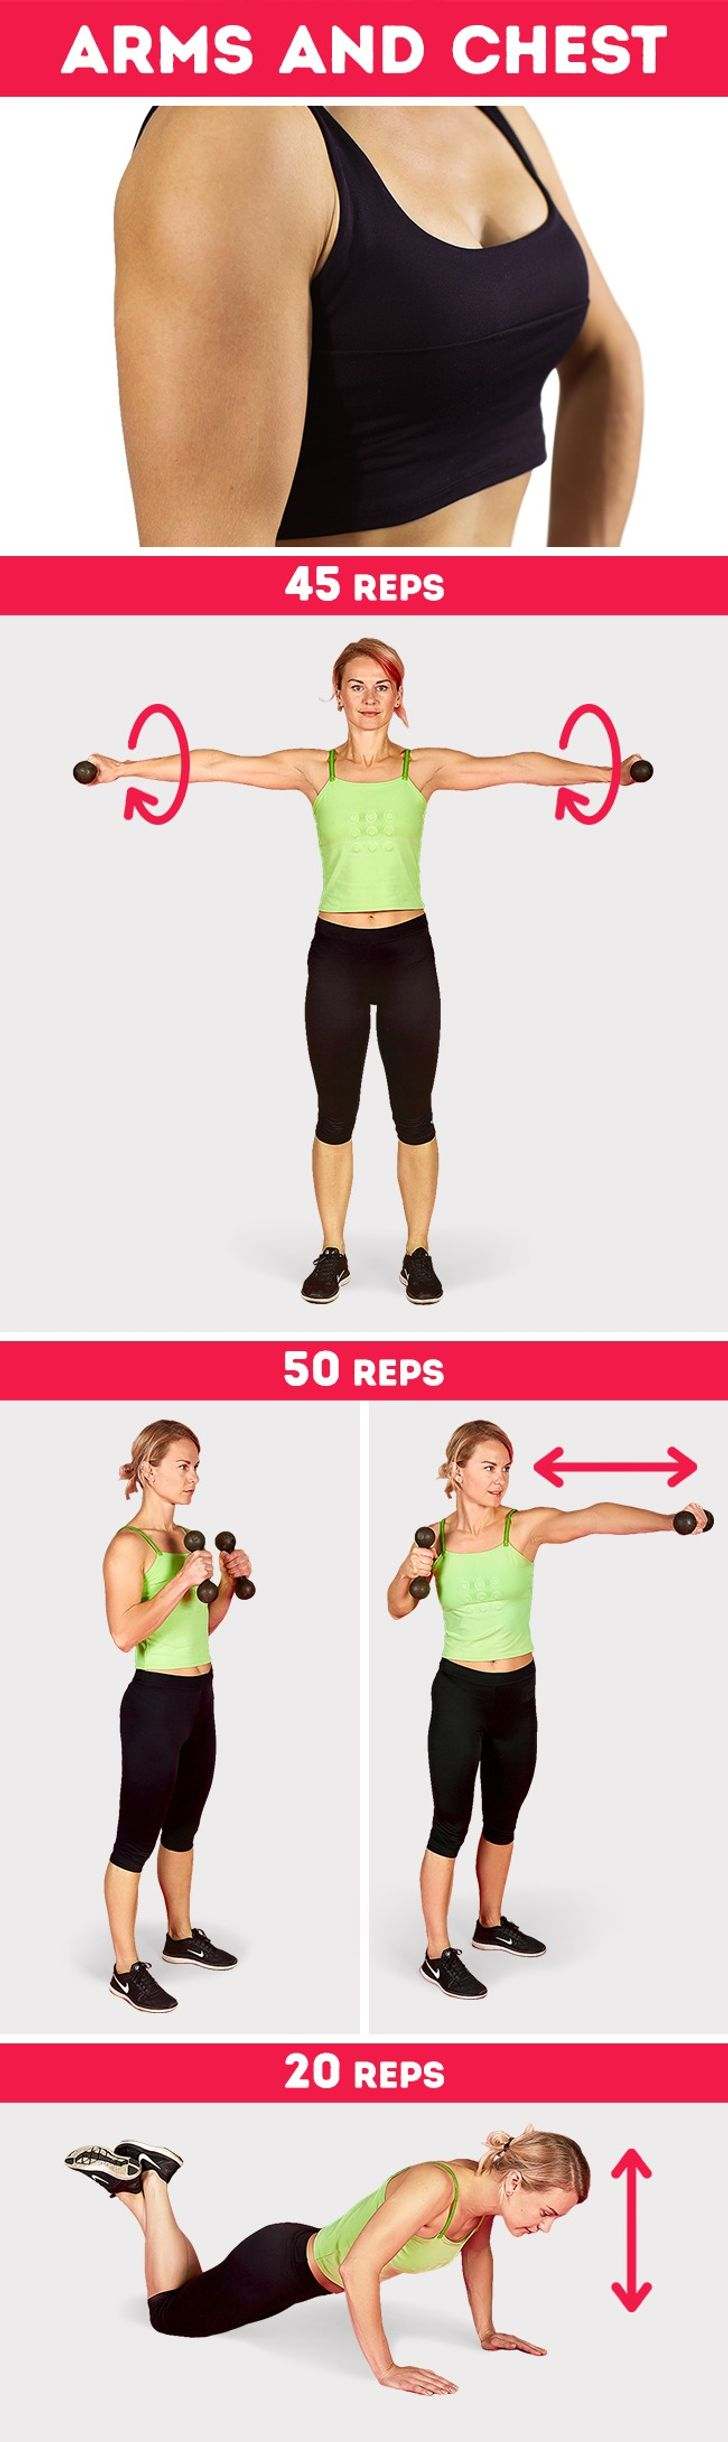 View How To Lose Weight With Minimal Exercise Pics - 1 ...